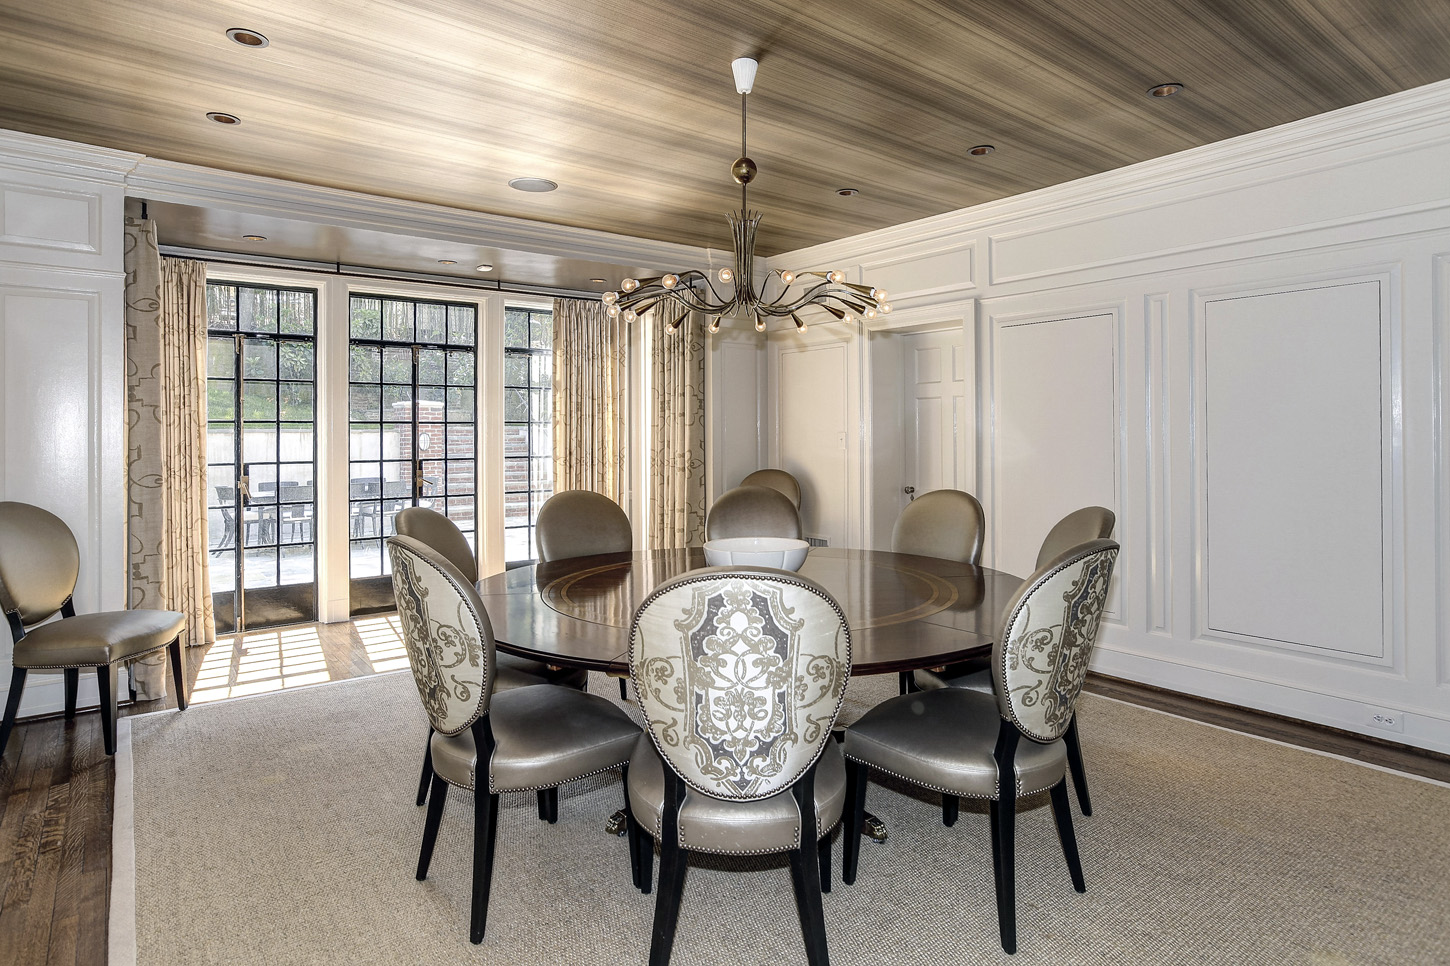 The dining room of the Obamas' new house, in the Kalorama area of Northwest D.C. (Courtesy McFadden Group)